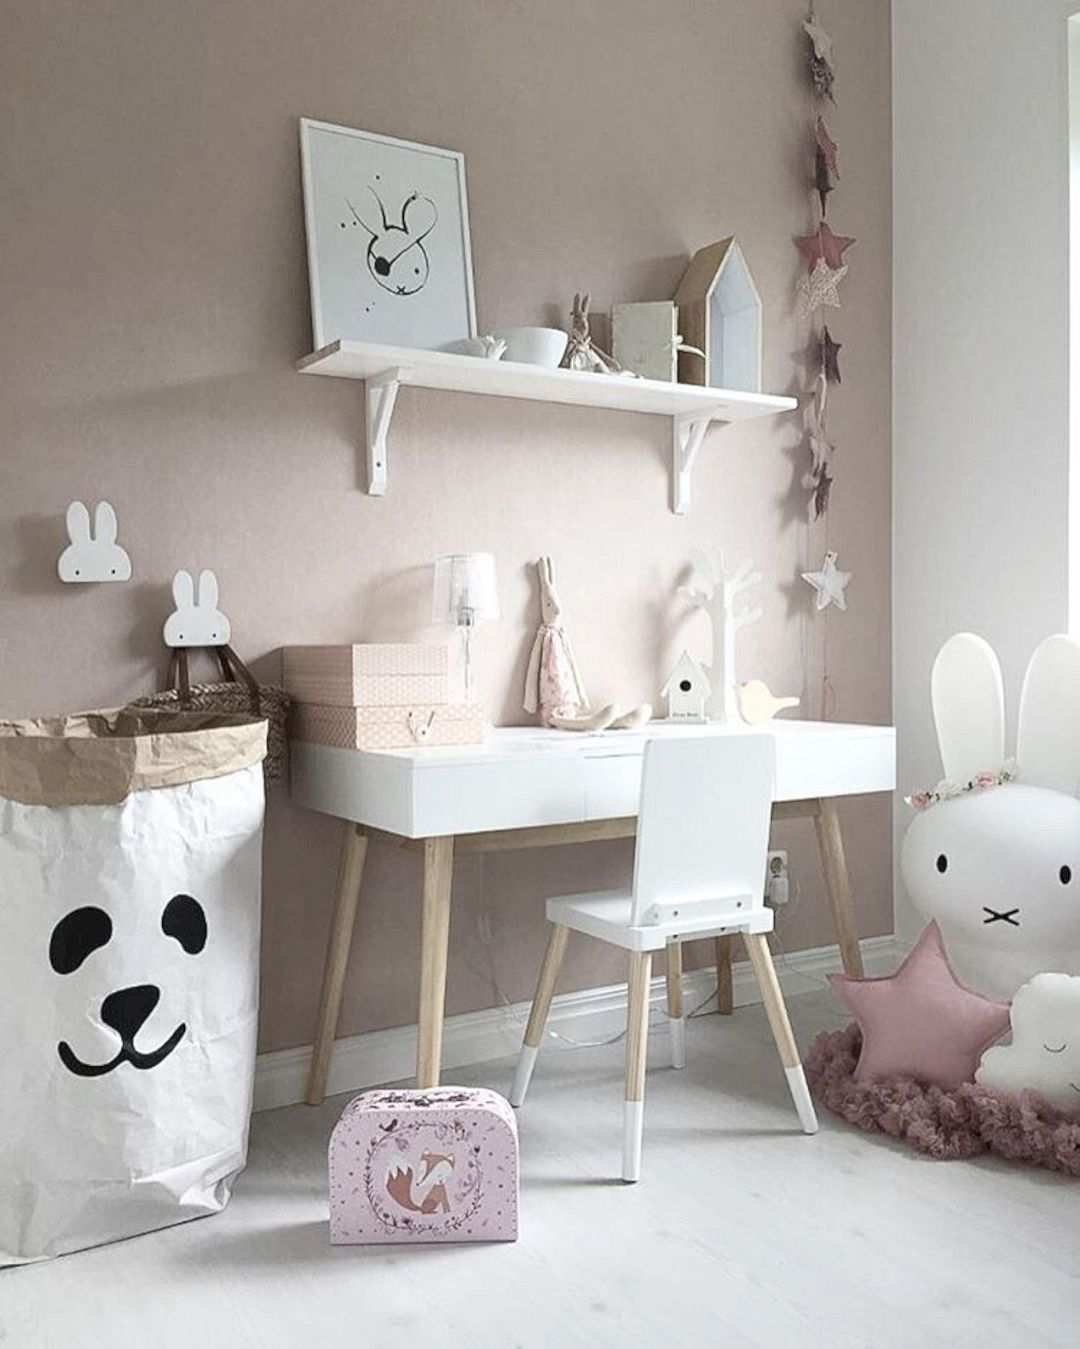 hide television design ideas, bedroom designs, western bedroom ideas, bedroom wall art, shelving ideas, bedroom shelf for candles, storage for small bedrooms ideas, beautiful bedroom ideas, on wo bedroom shelf decorating ideas.html